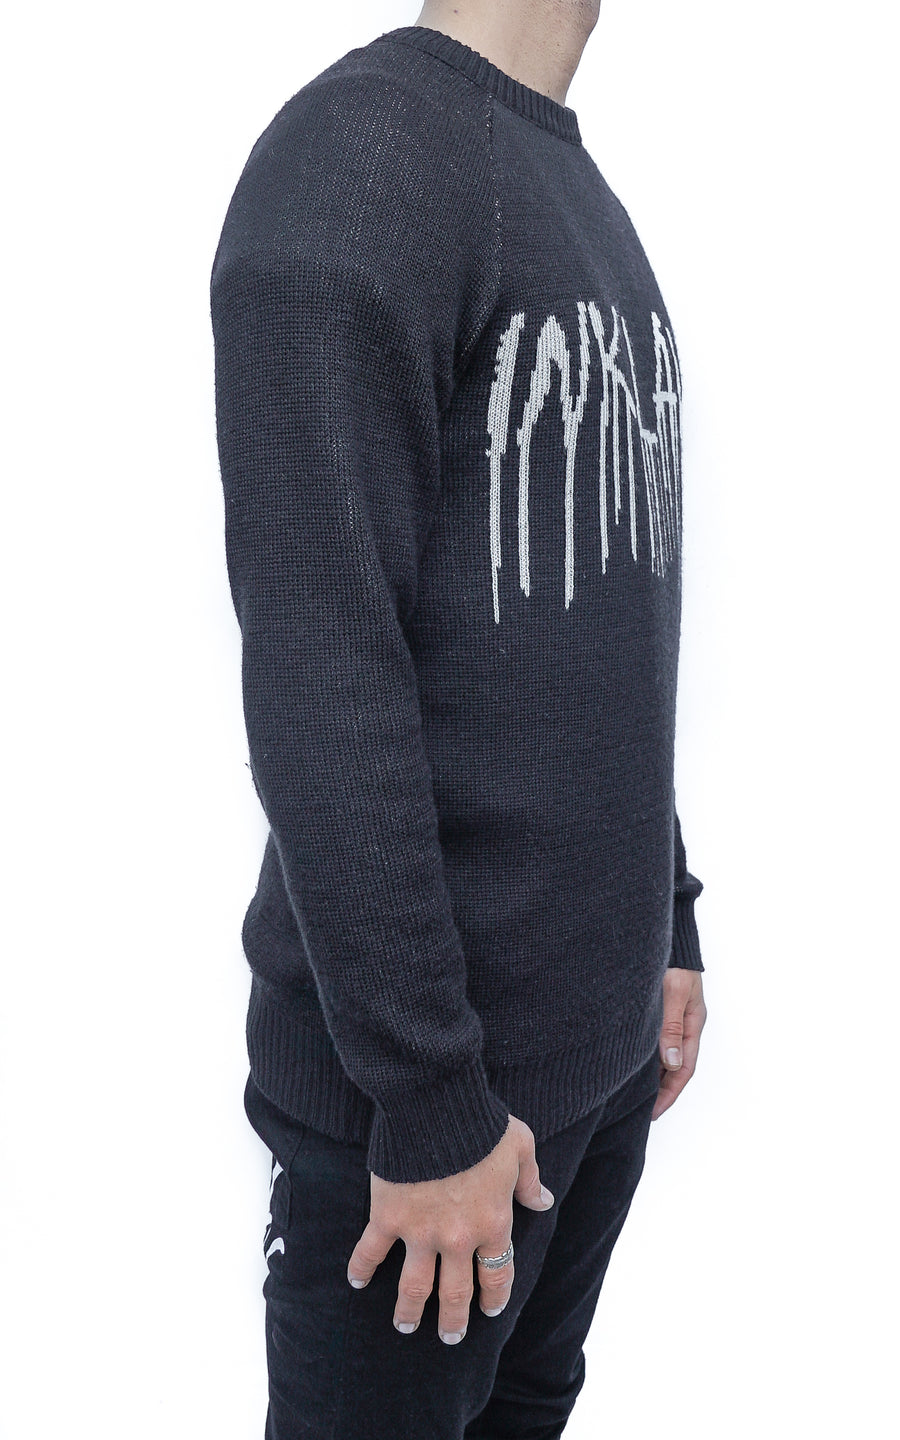 ONYX TEAR KNIT SWEATER - BLACK